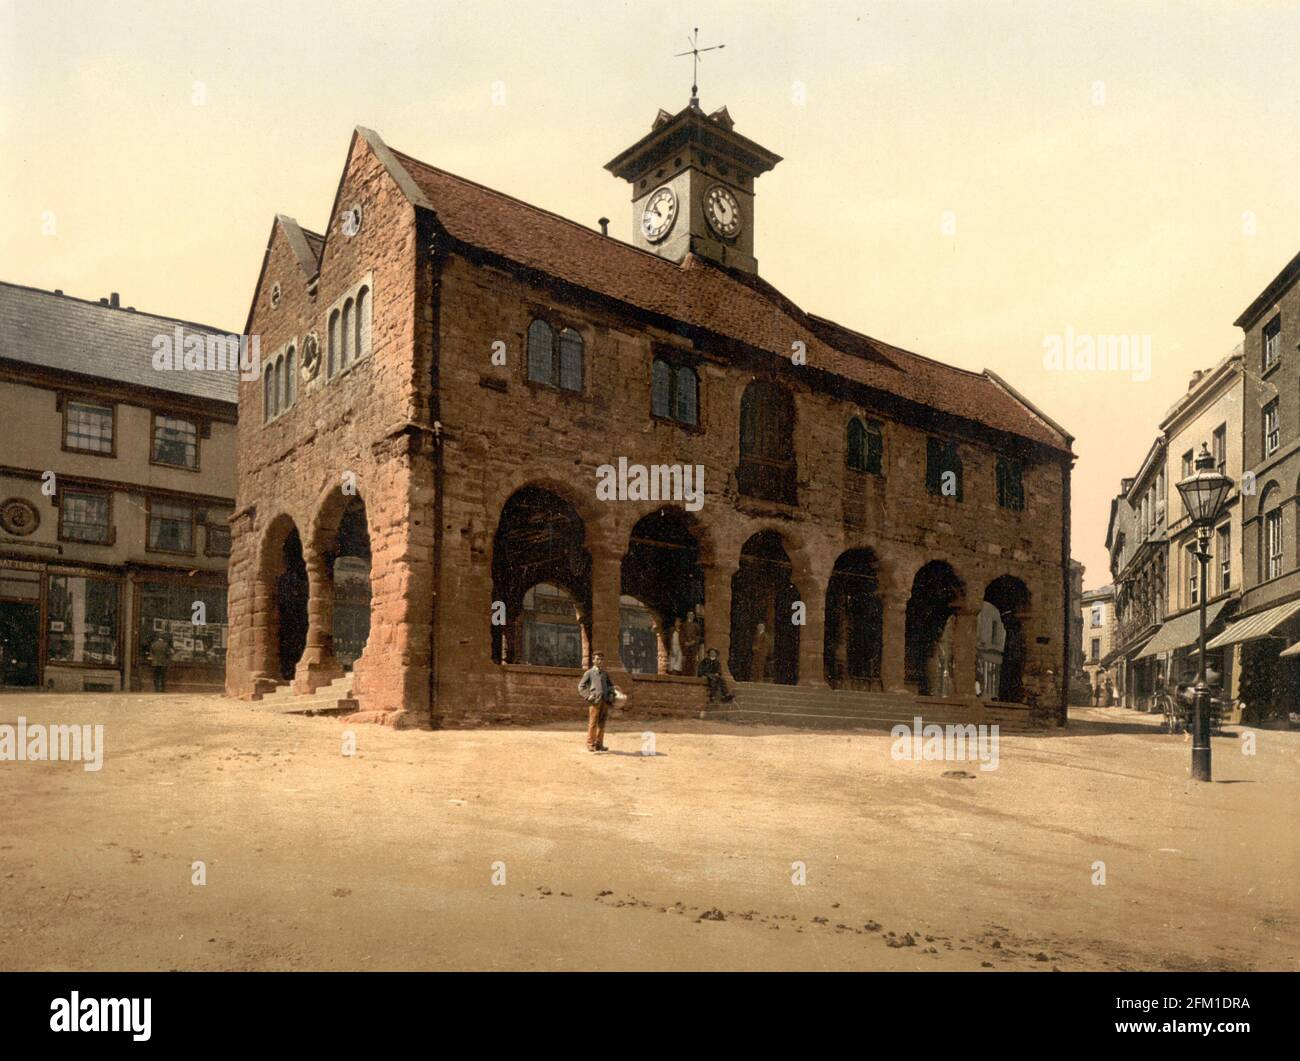 The Market House, Ross-on-Wye in Herefordshire, circa 1890-1900 Foto Stock